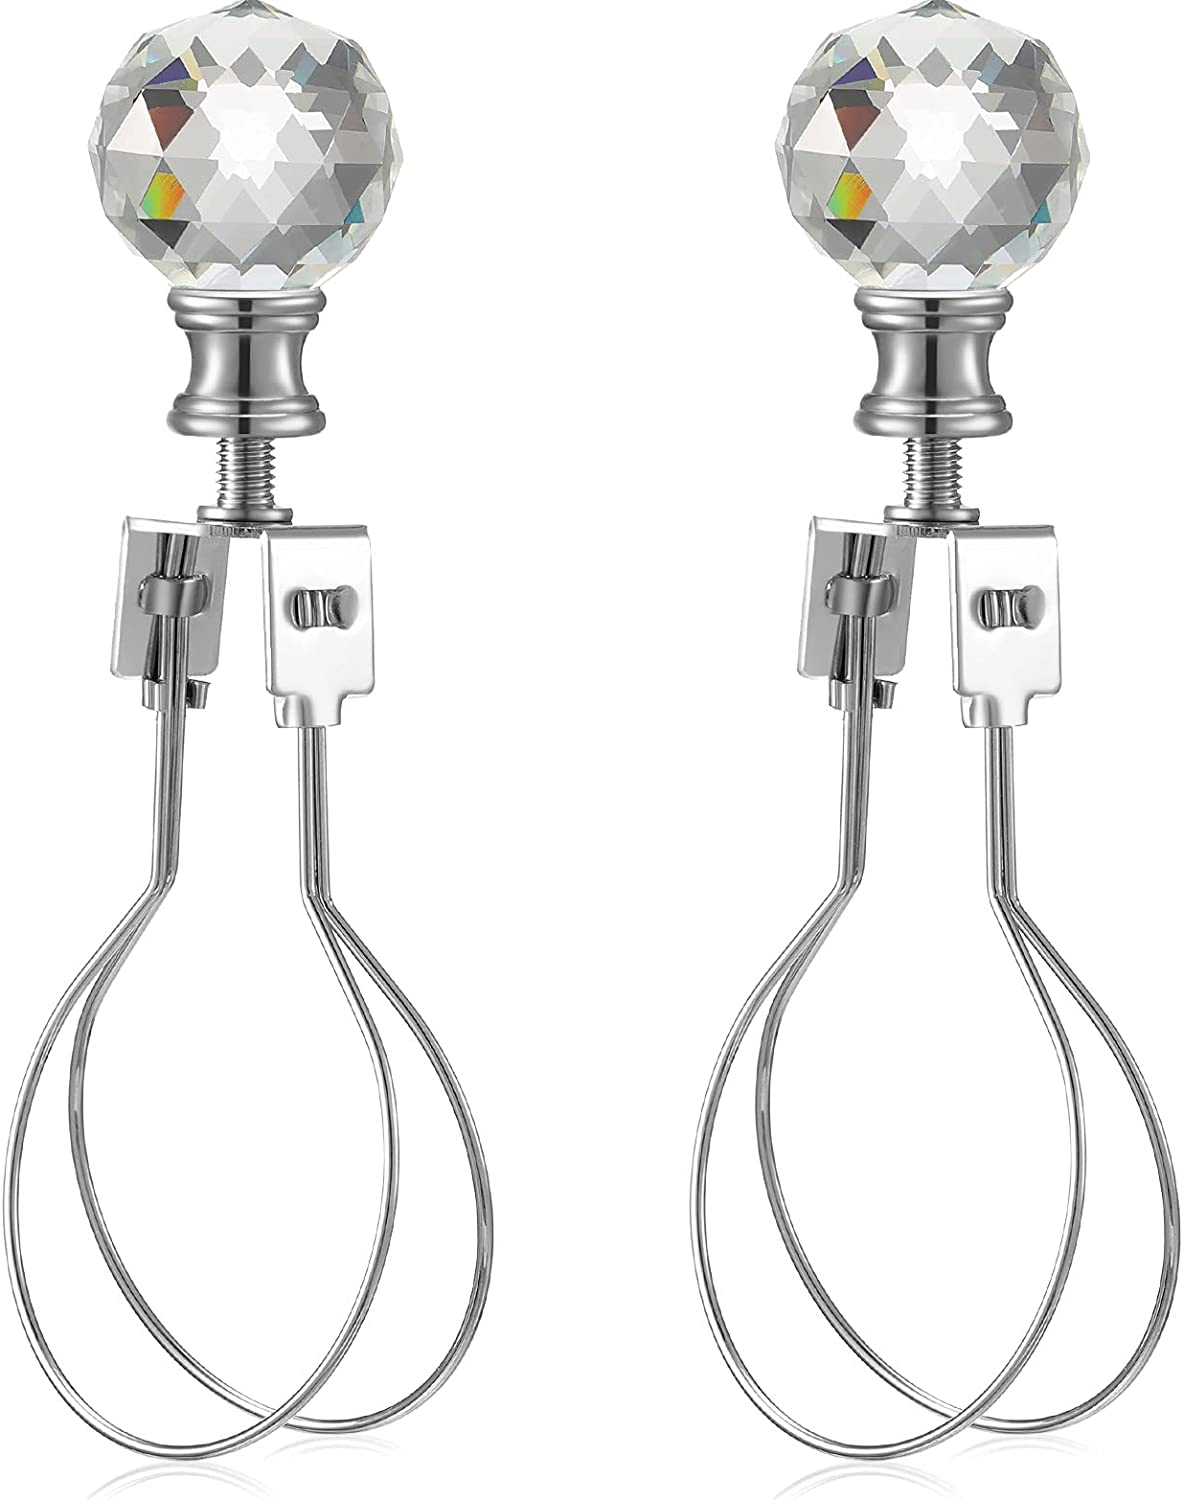 2 Pieces Lamp Shade Max Mesa Mall 65% OFF Light Bulb Fac Saddle and Clip with